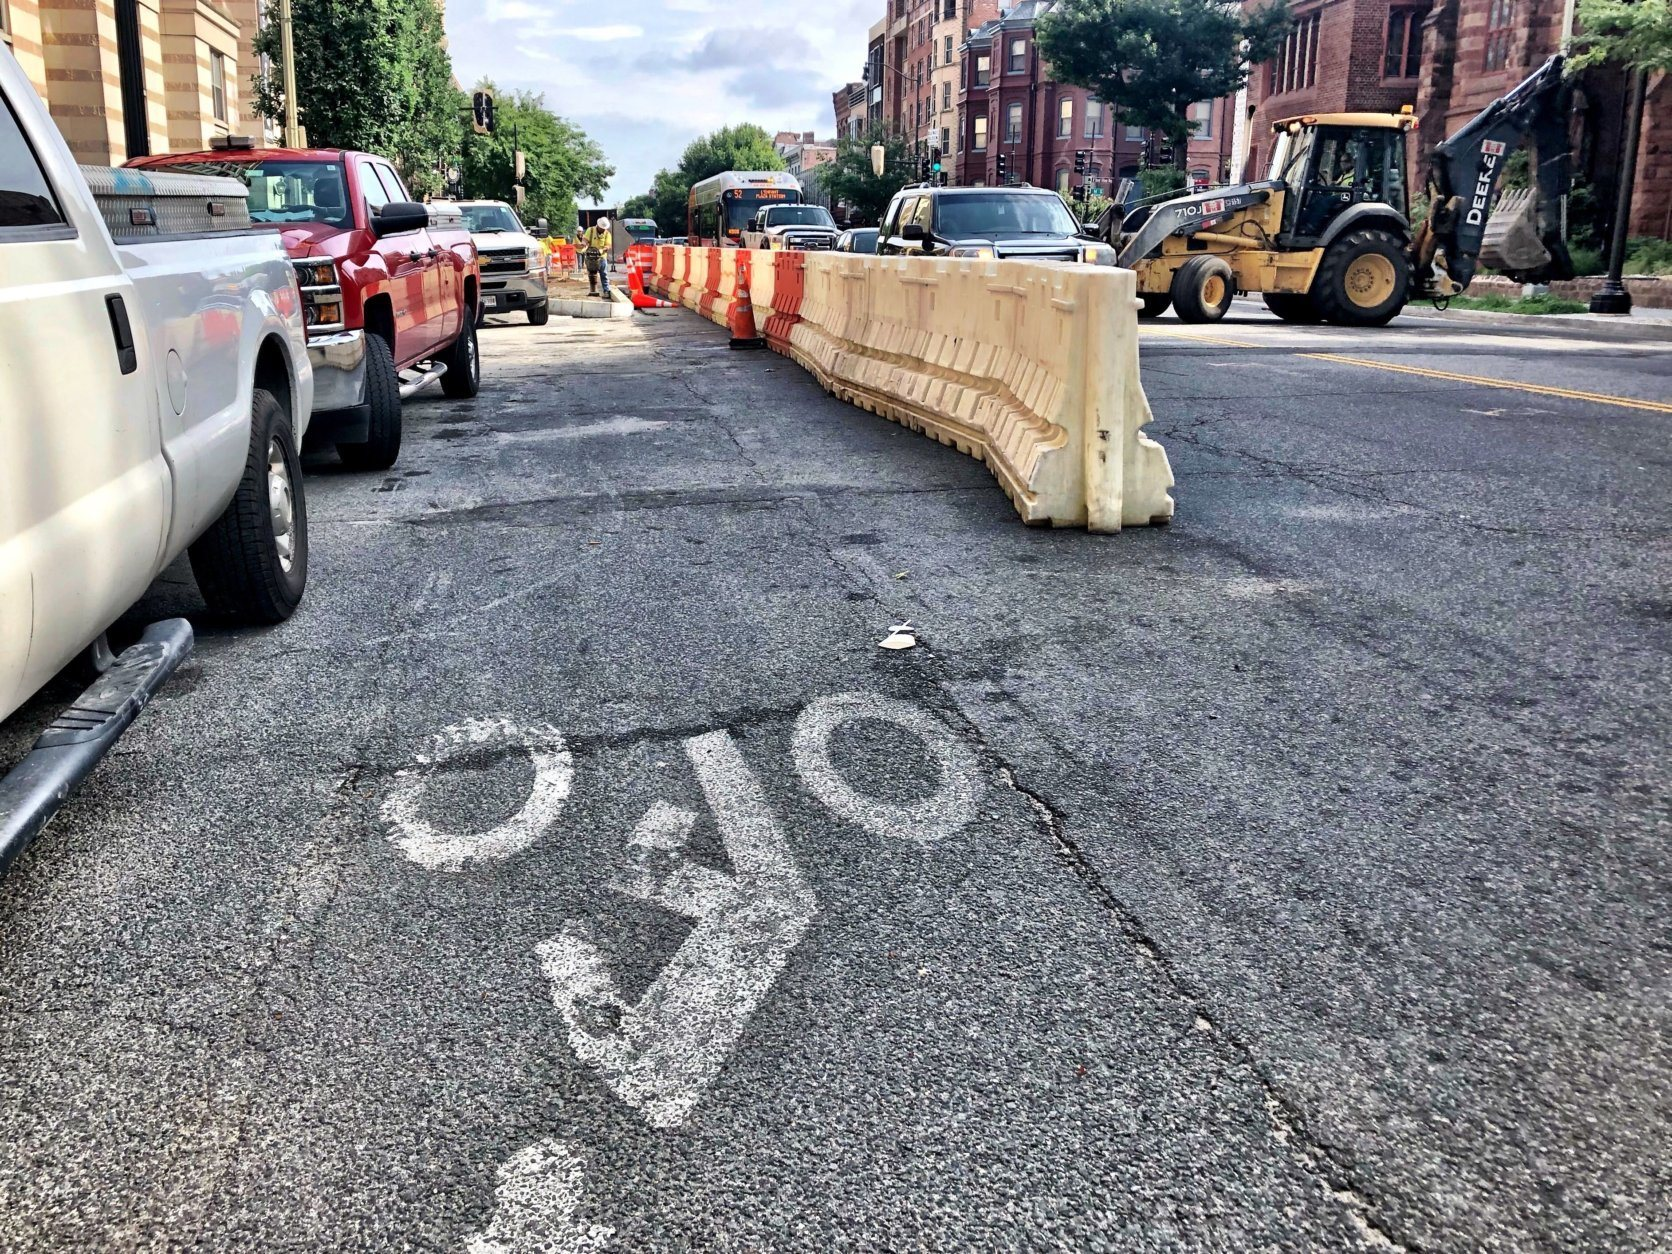 Demarcated bike lanes are painted on 14th Street, but bike commuters say drivers often park in them. (WTOP/Neal Augenstein)